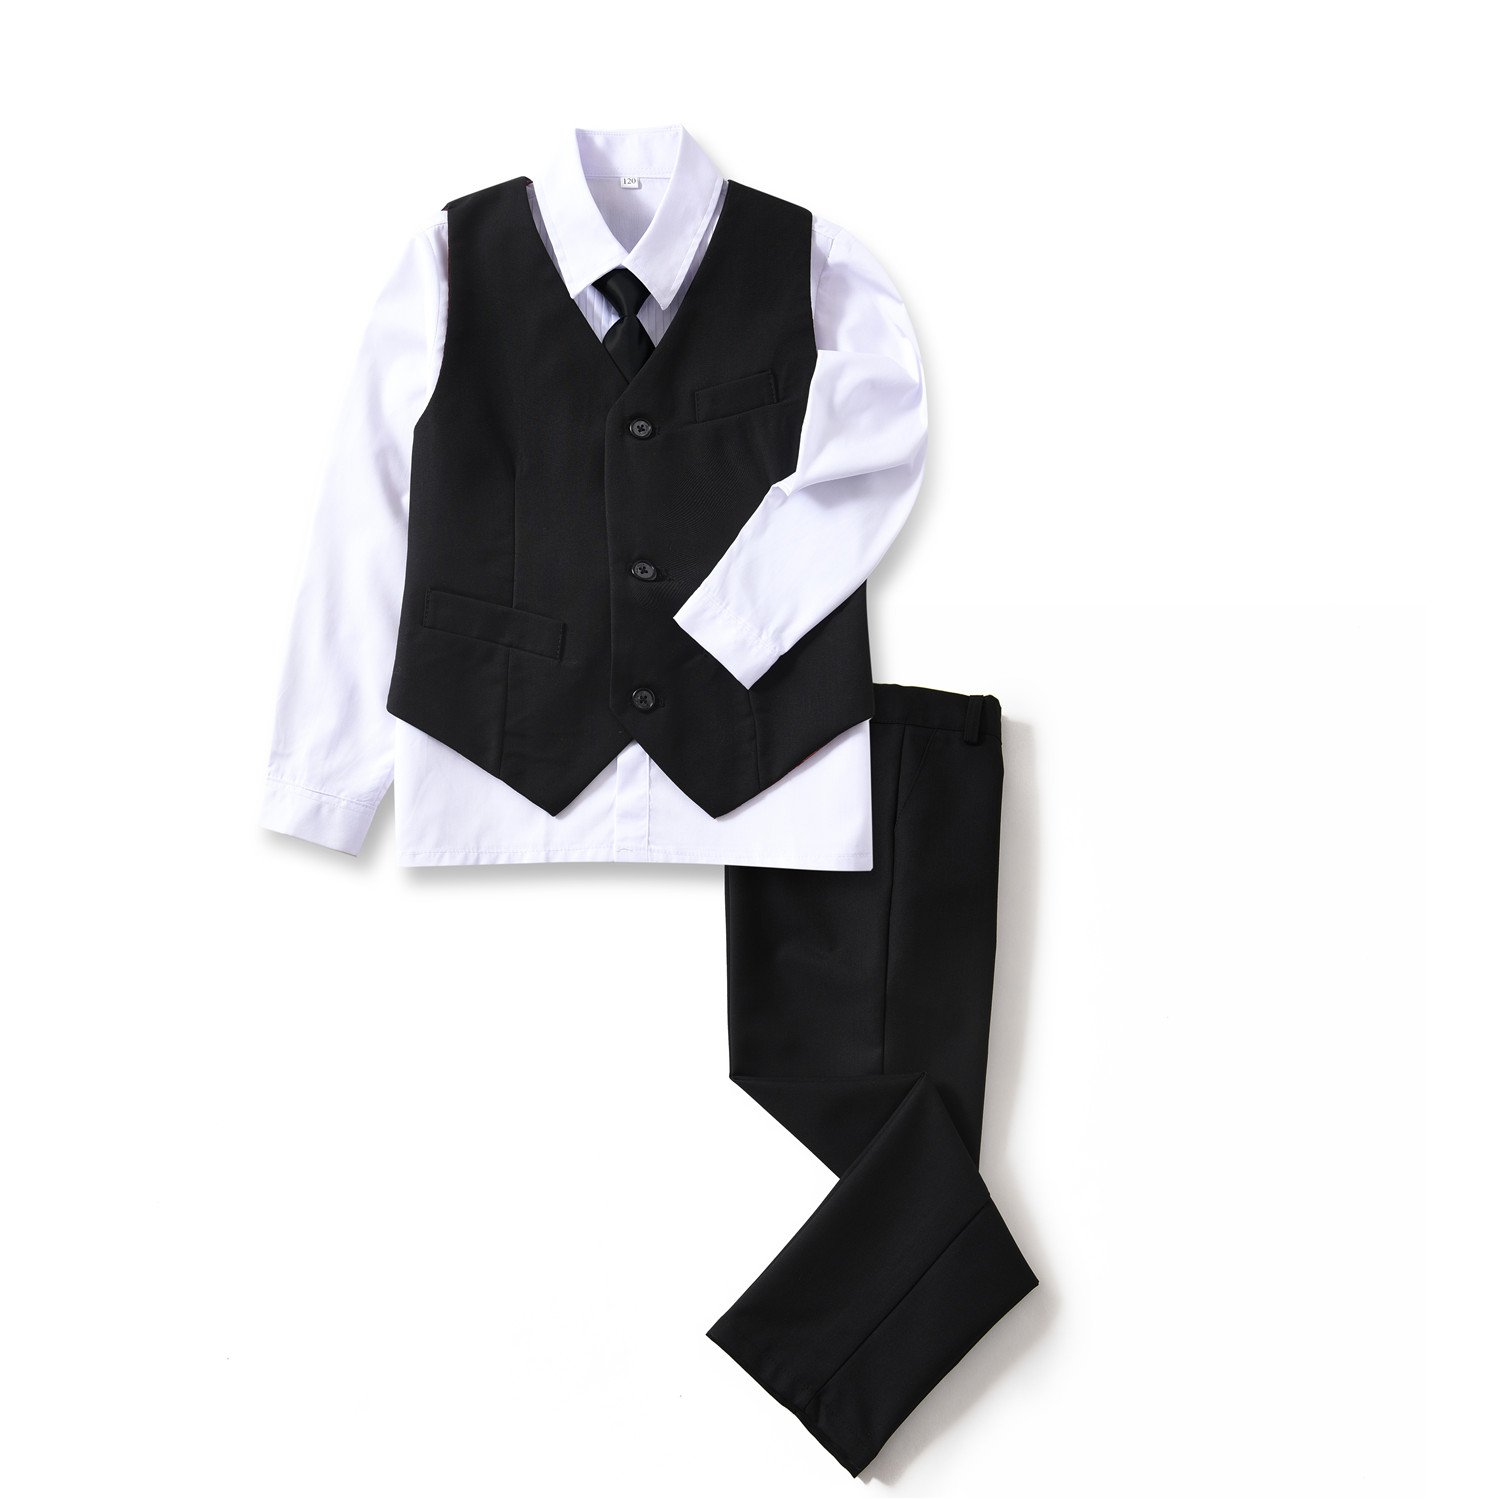 Yuanlu 4 Piece Boys's Formal Suit Set with Black Vest Pants White Dress Shirt and Tie Size 8